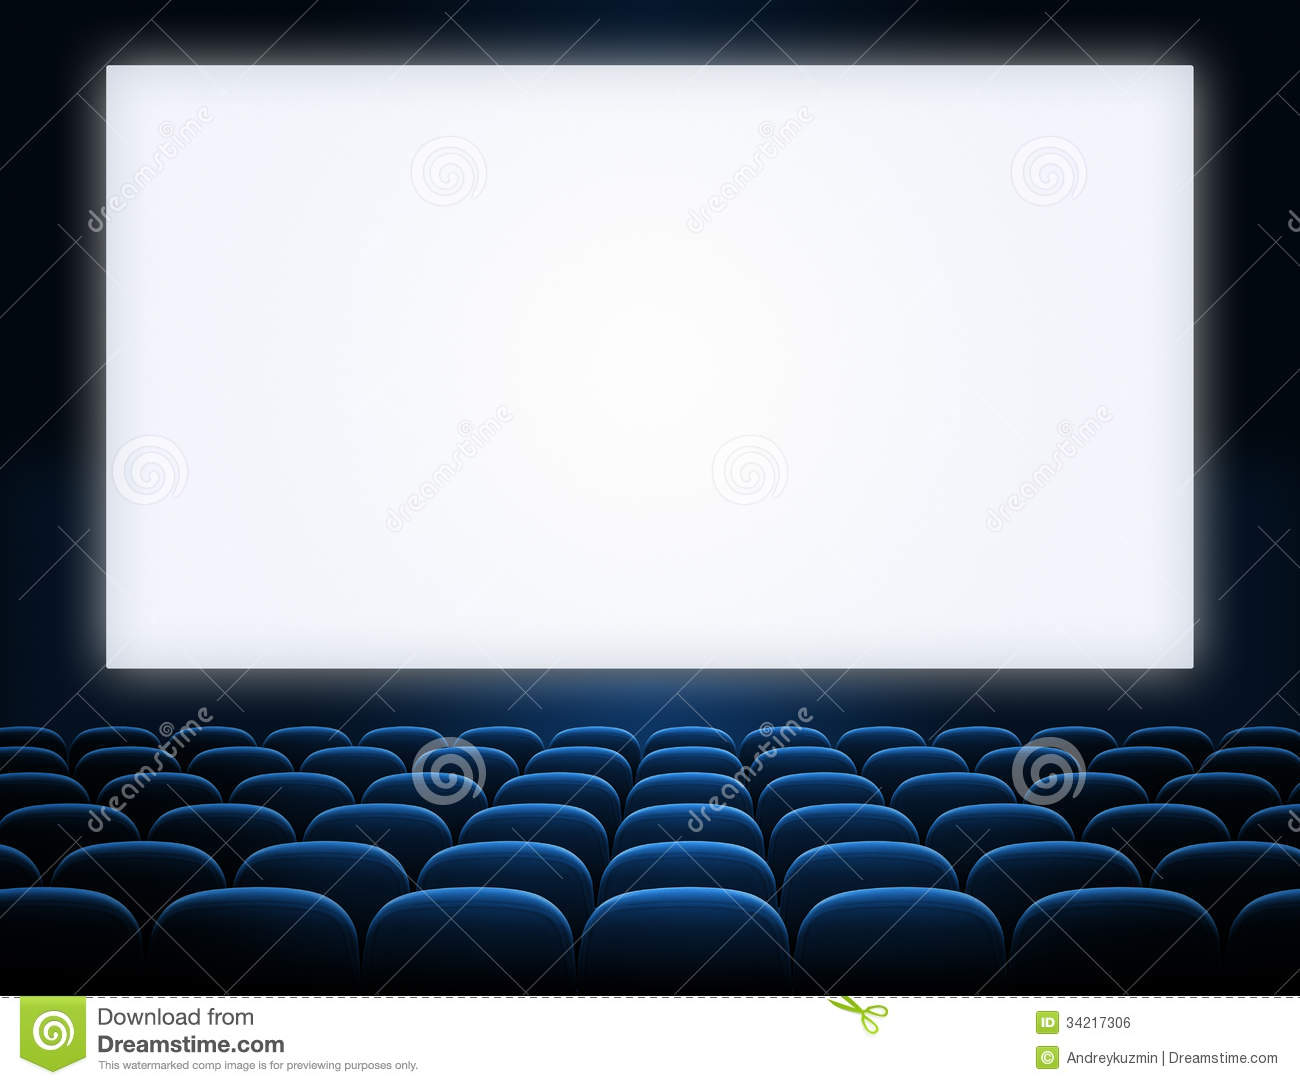 Cinema Blank Screen With Blue Seats Royalty Free Stock